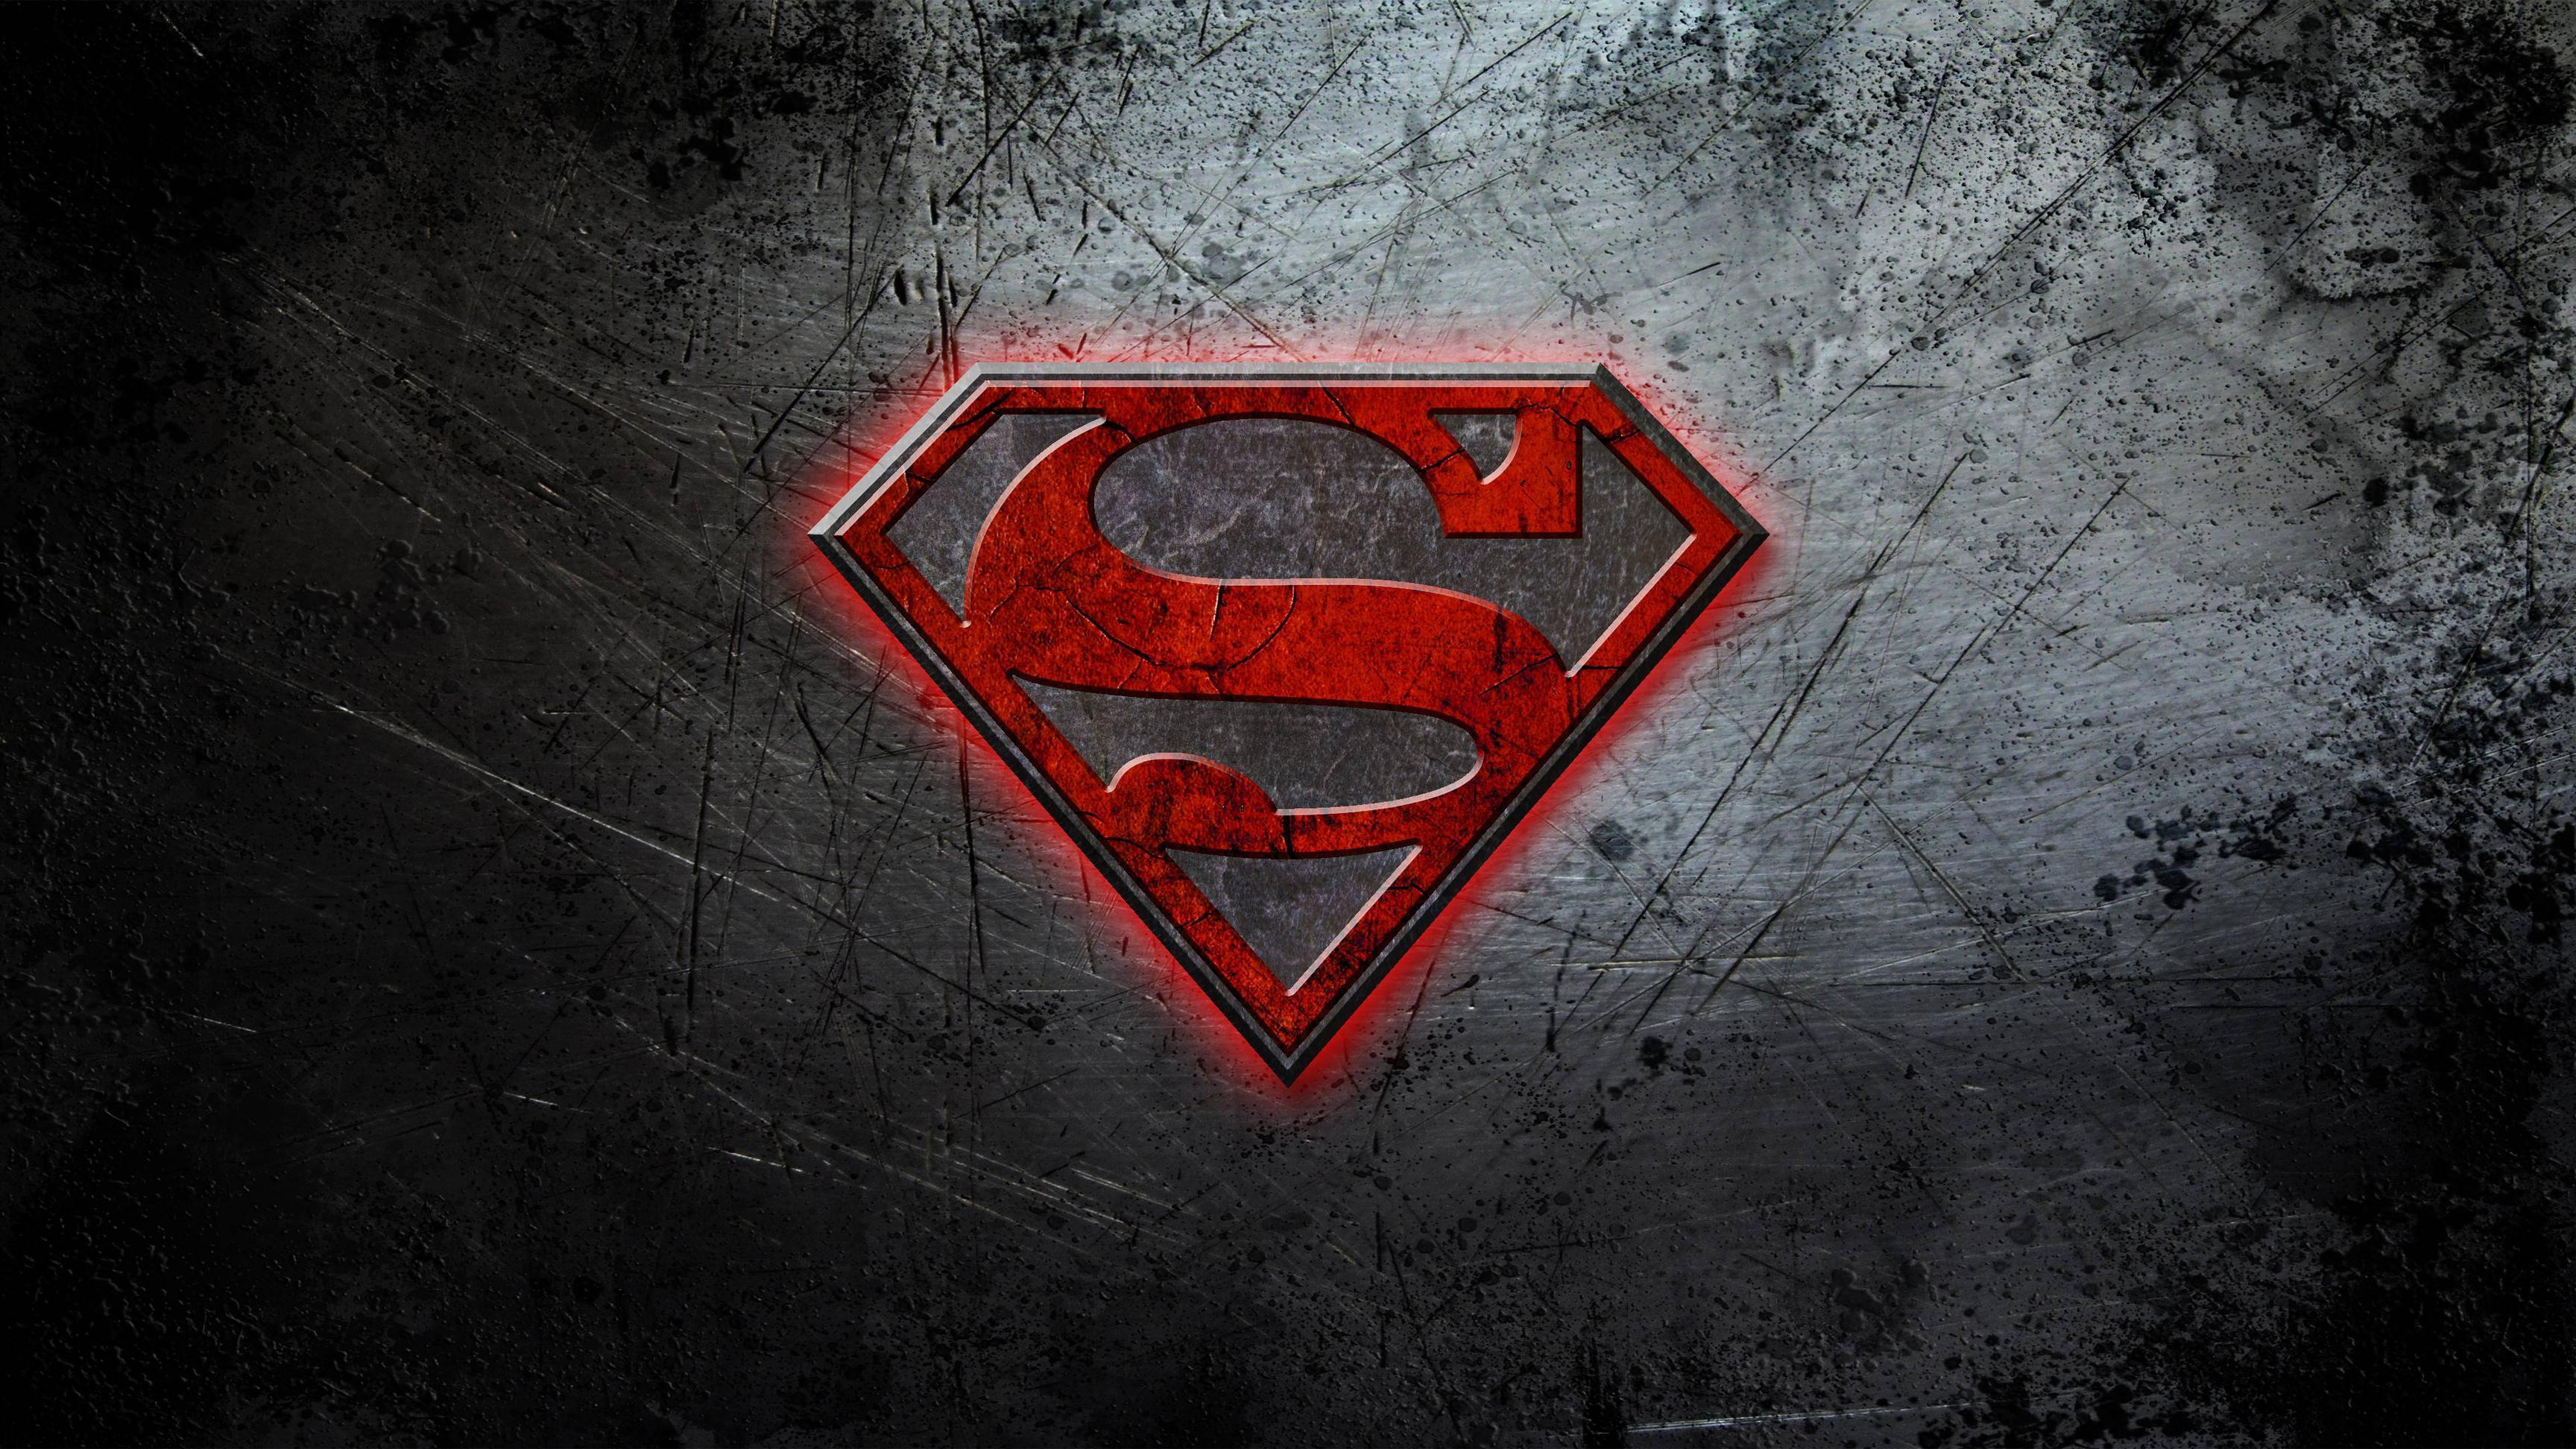 Superman Computer Wallpapers, Desktop Backgrounds 3840x2160 Id: 463447